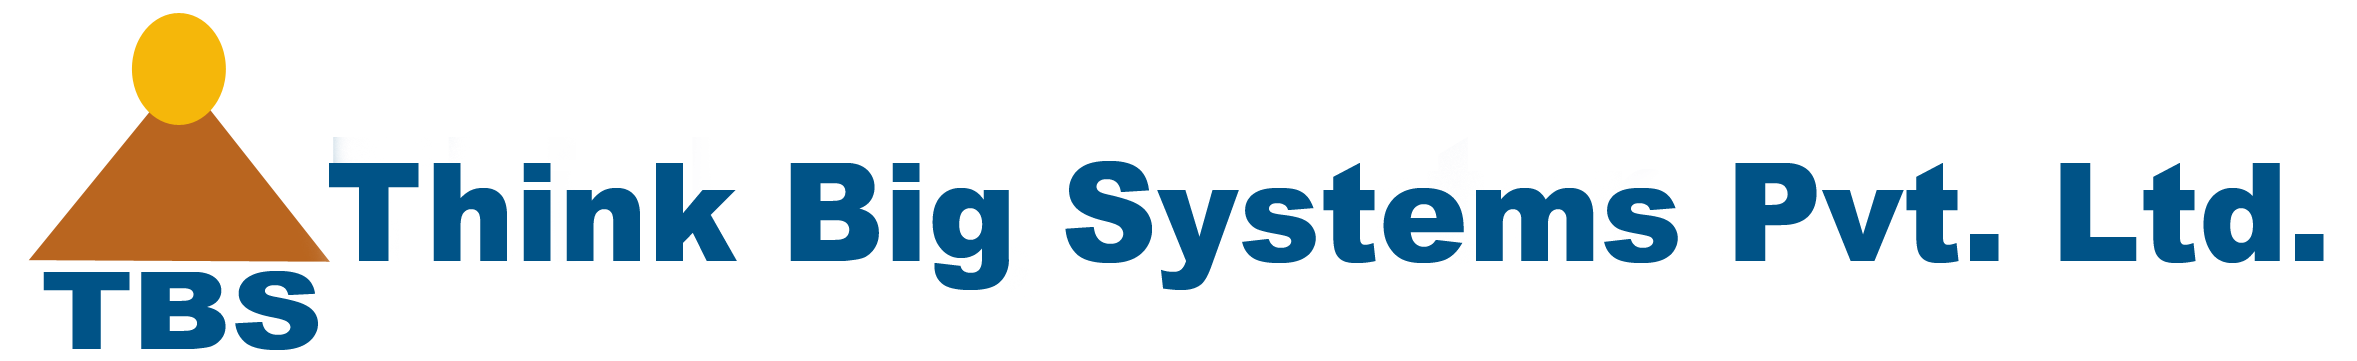 think-big-system-logo